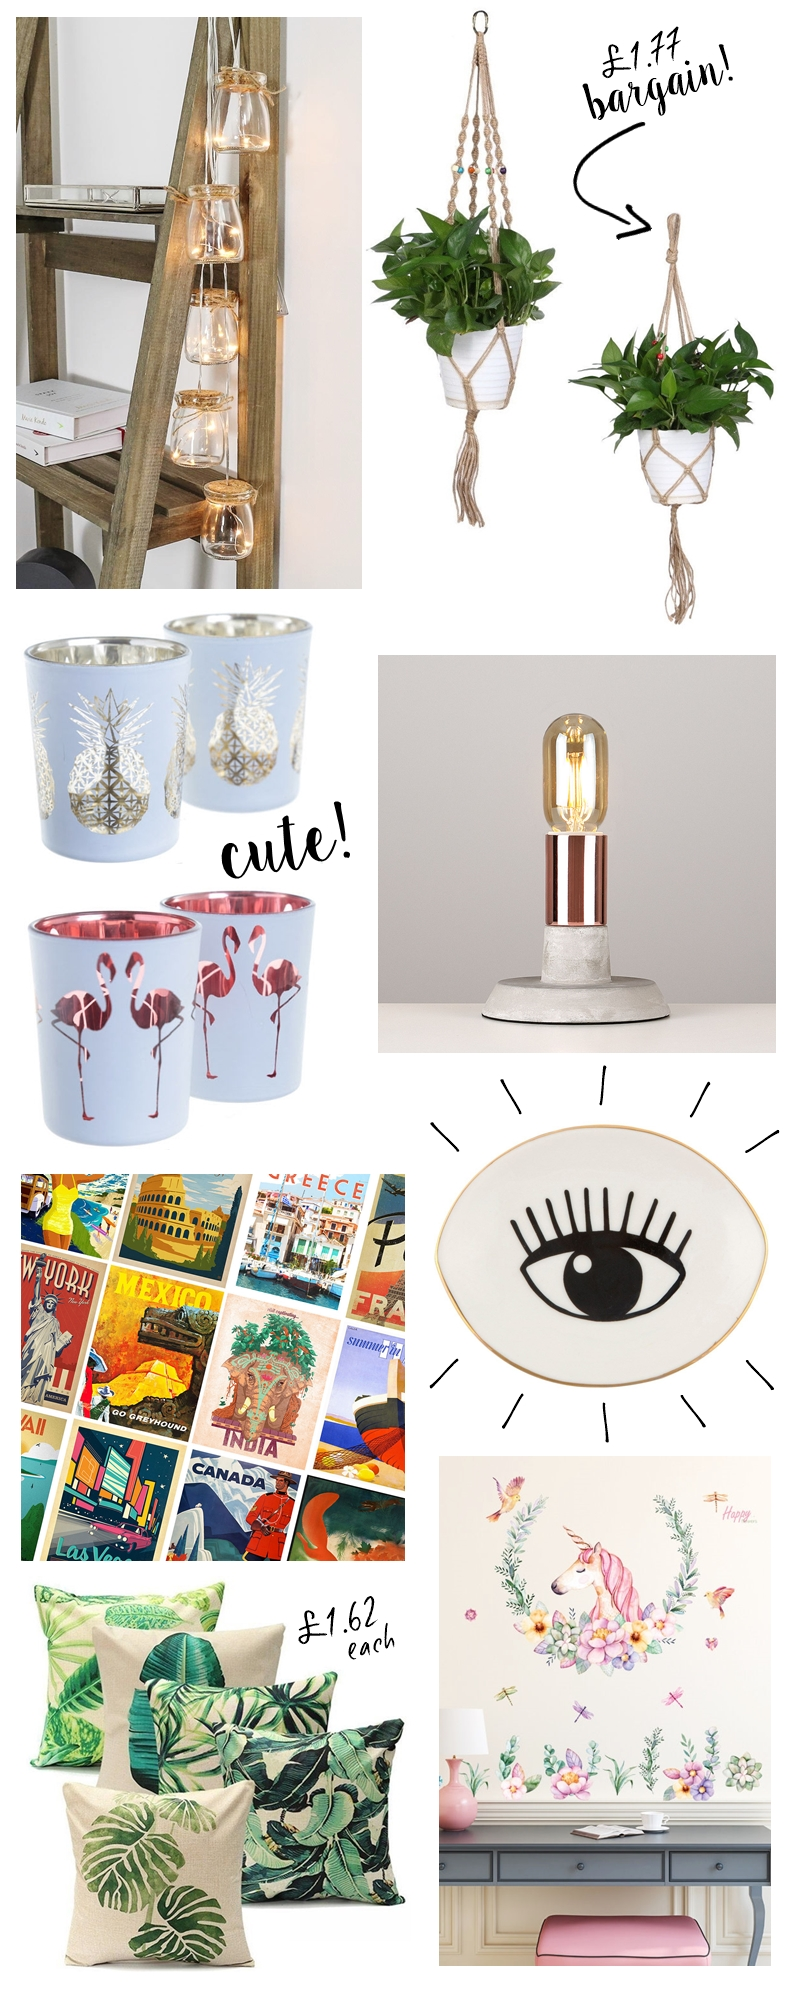 ebay-homeware-finds-cheap